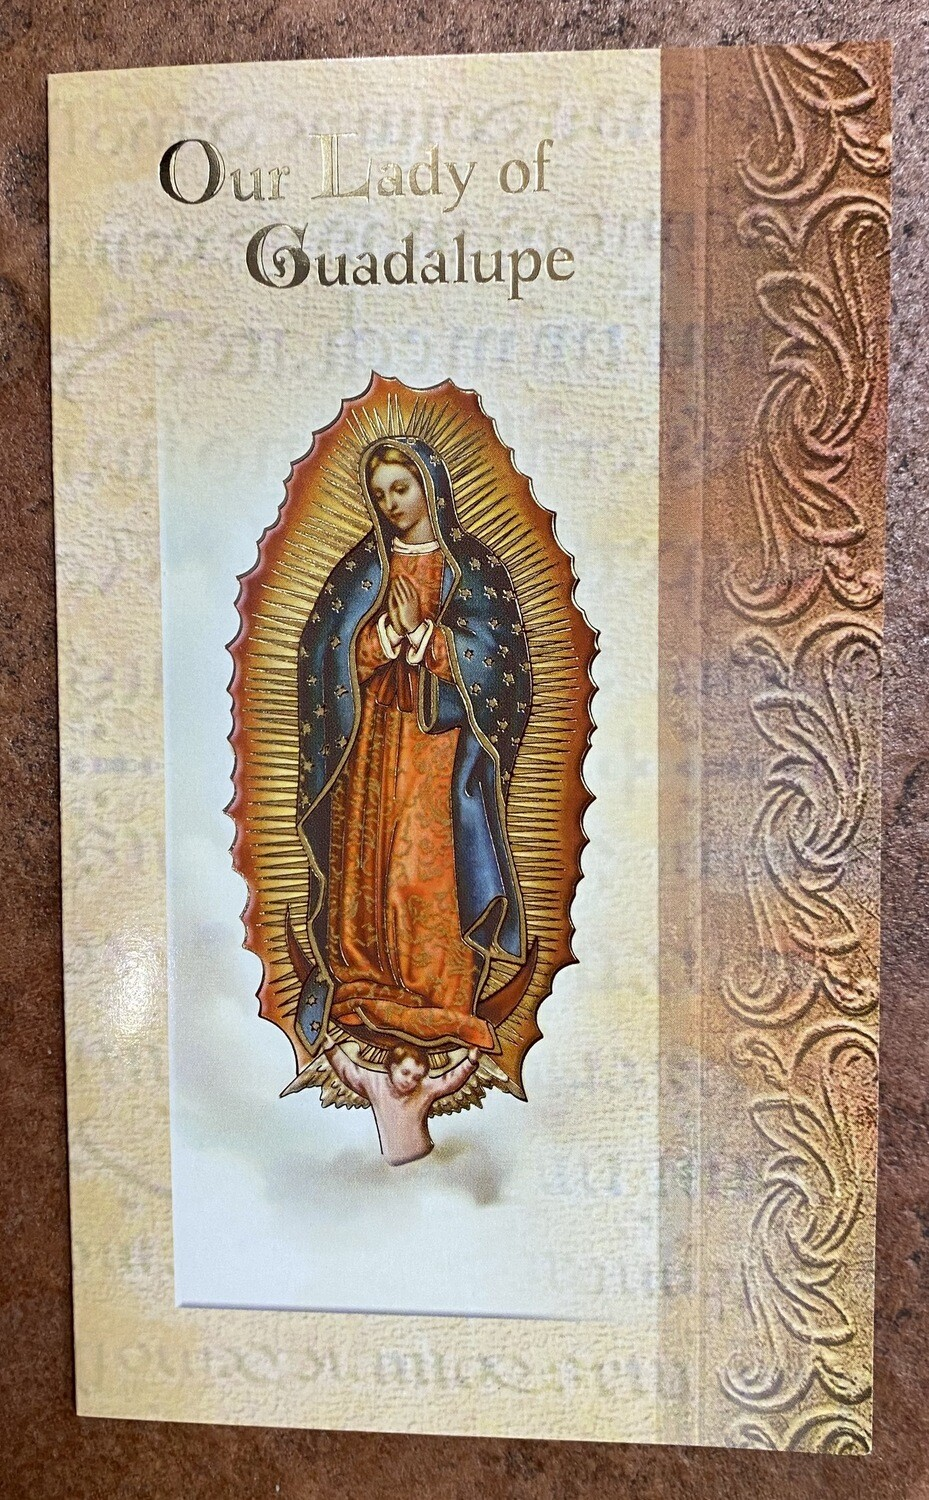 Our Lady Of Guadalupe Biography Prayer Card